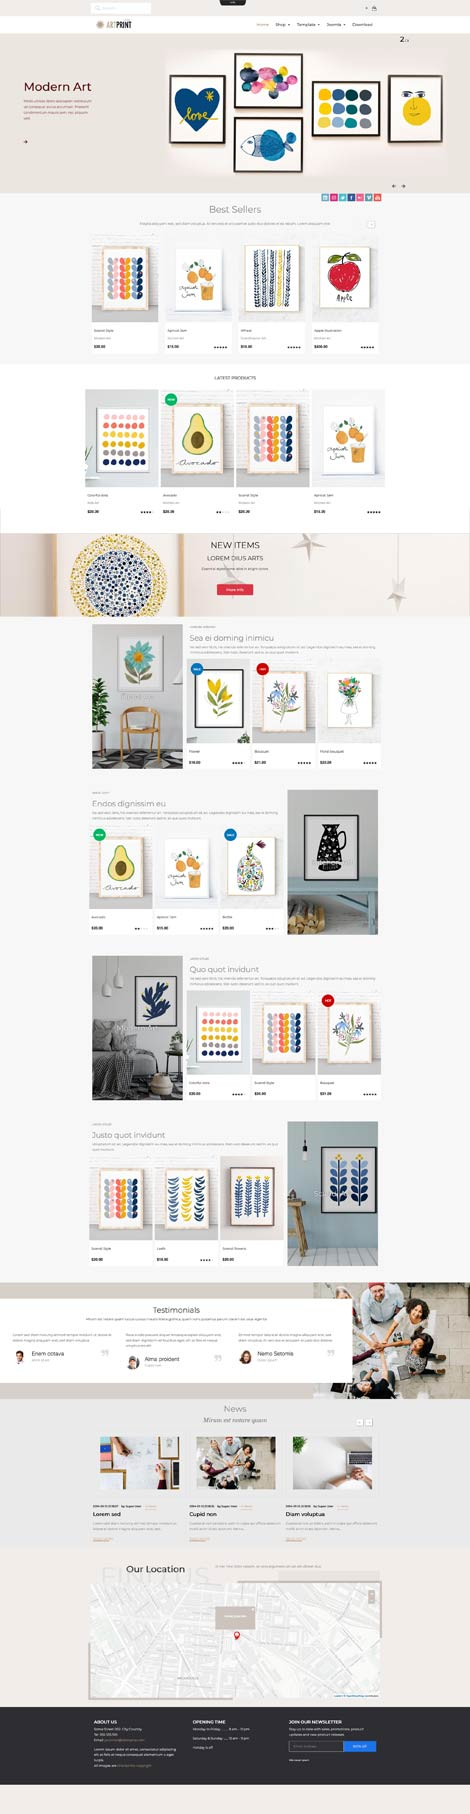 Ol Artprint - Virtuemart eCommerce joomla template